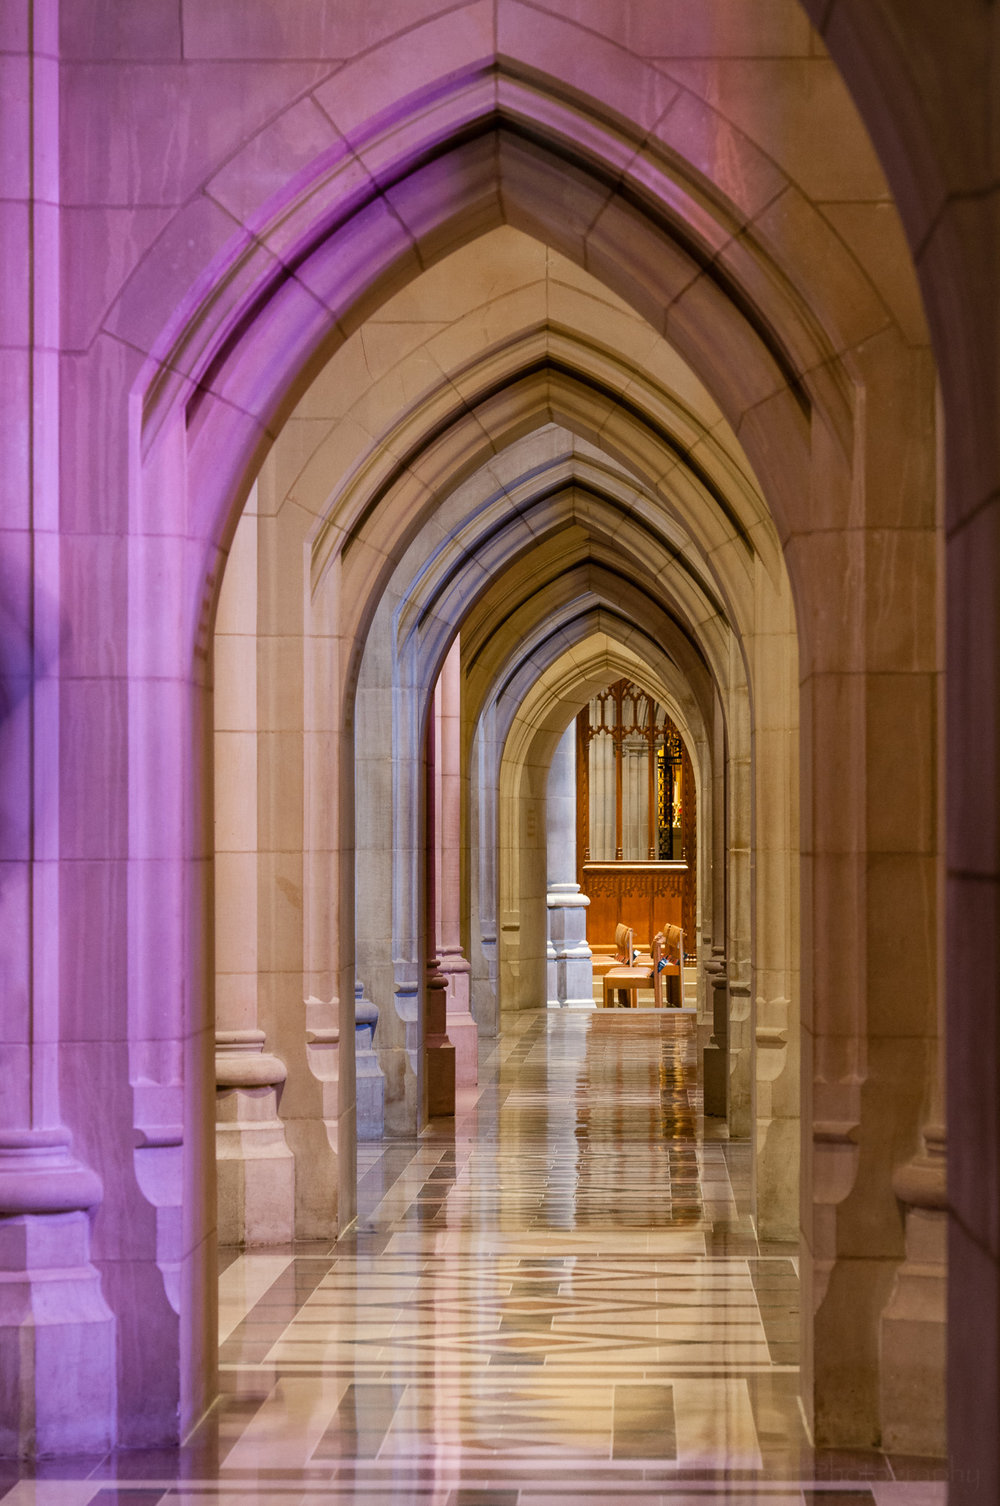 Colorful hallway illuminated by stained glass windows.